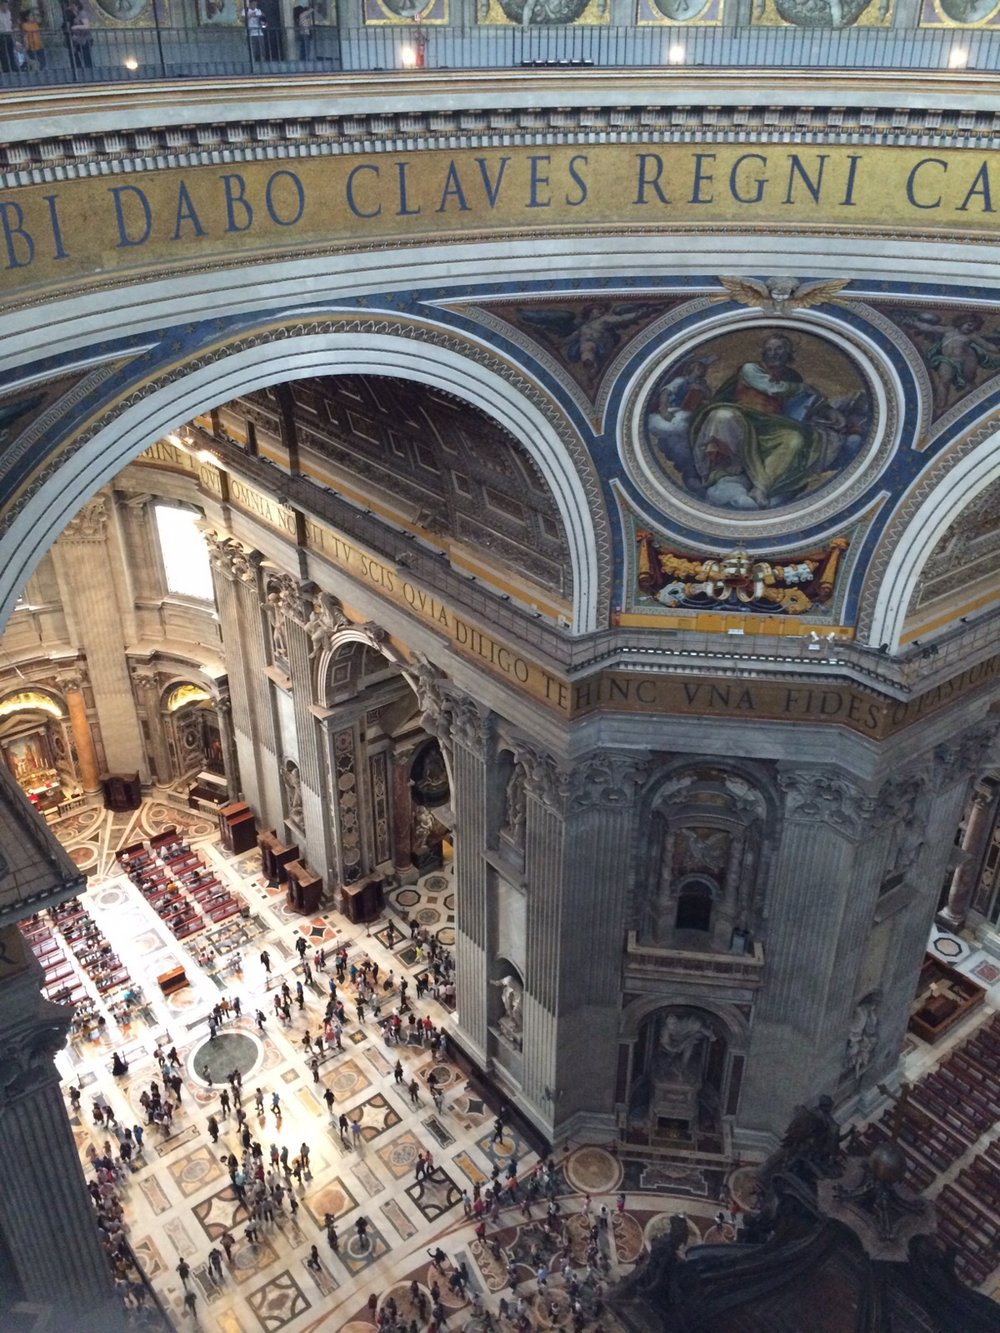 view over the ground floor of St Peter's Basilica